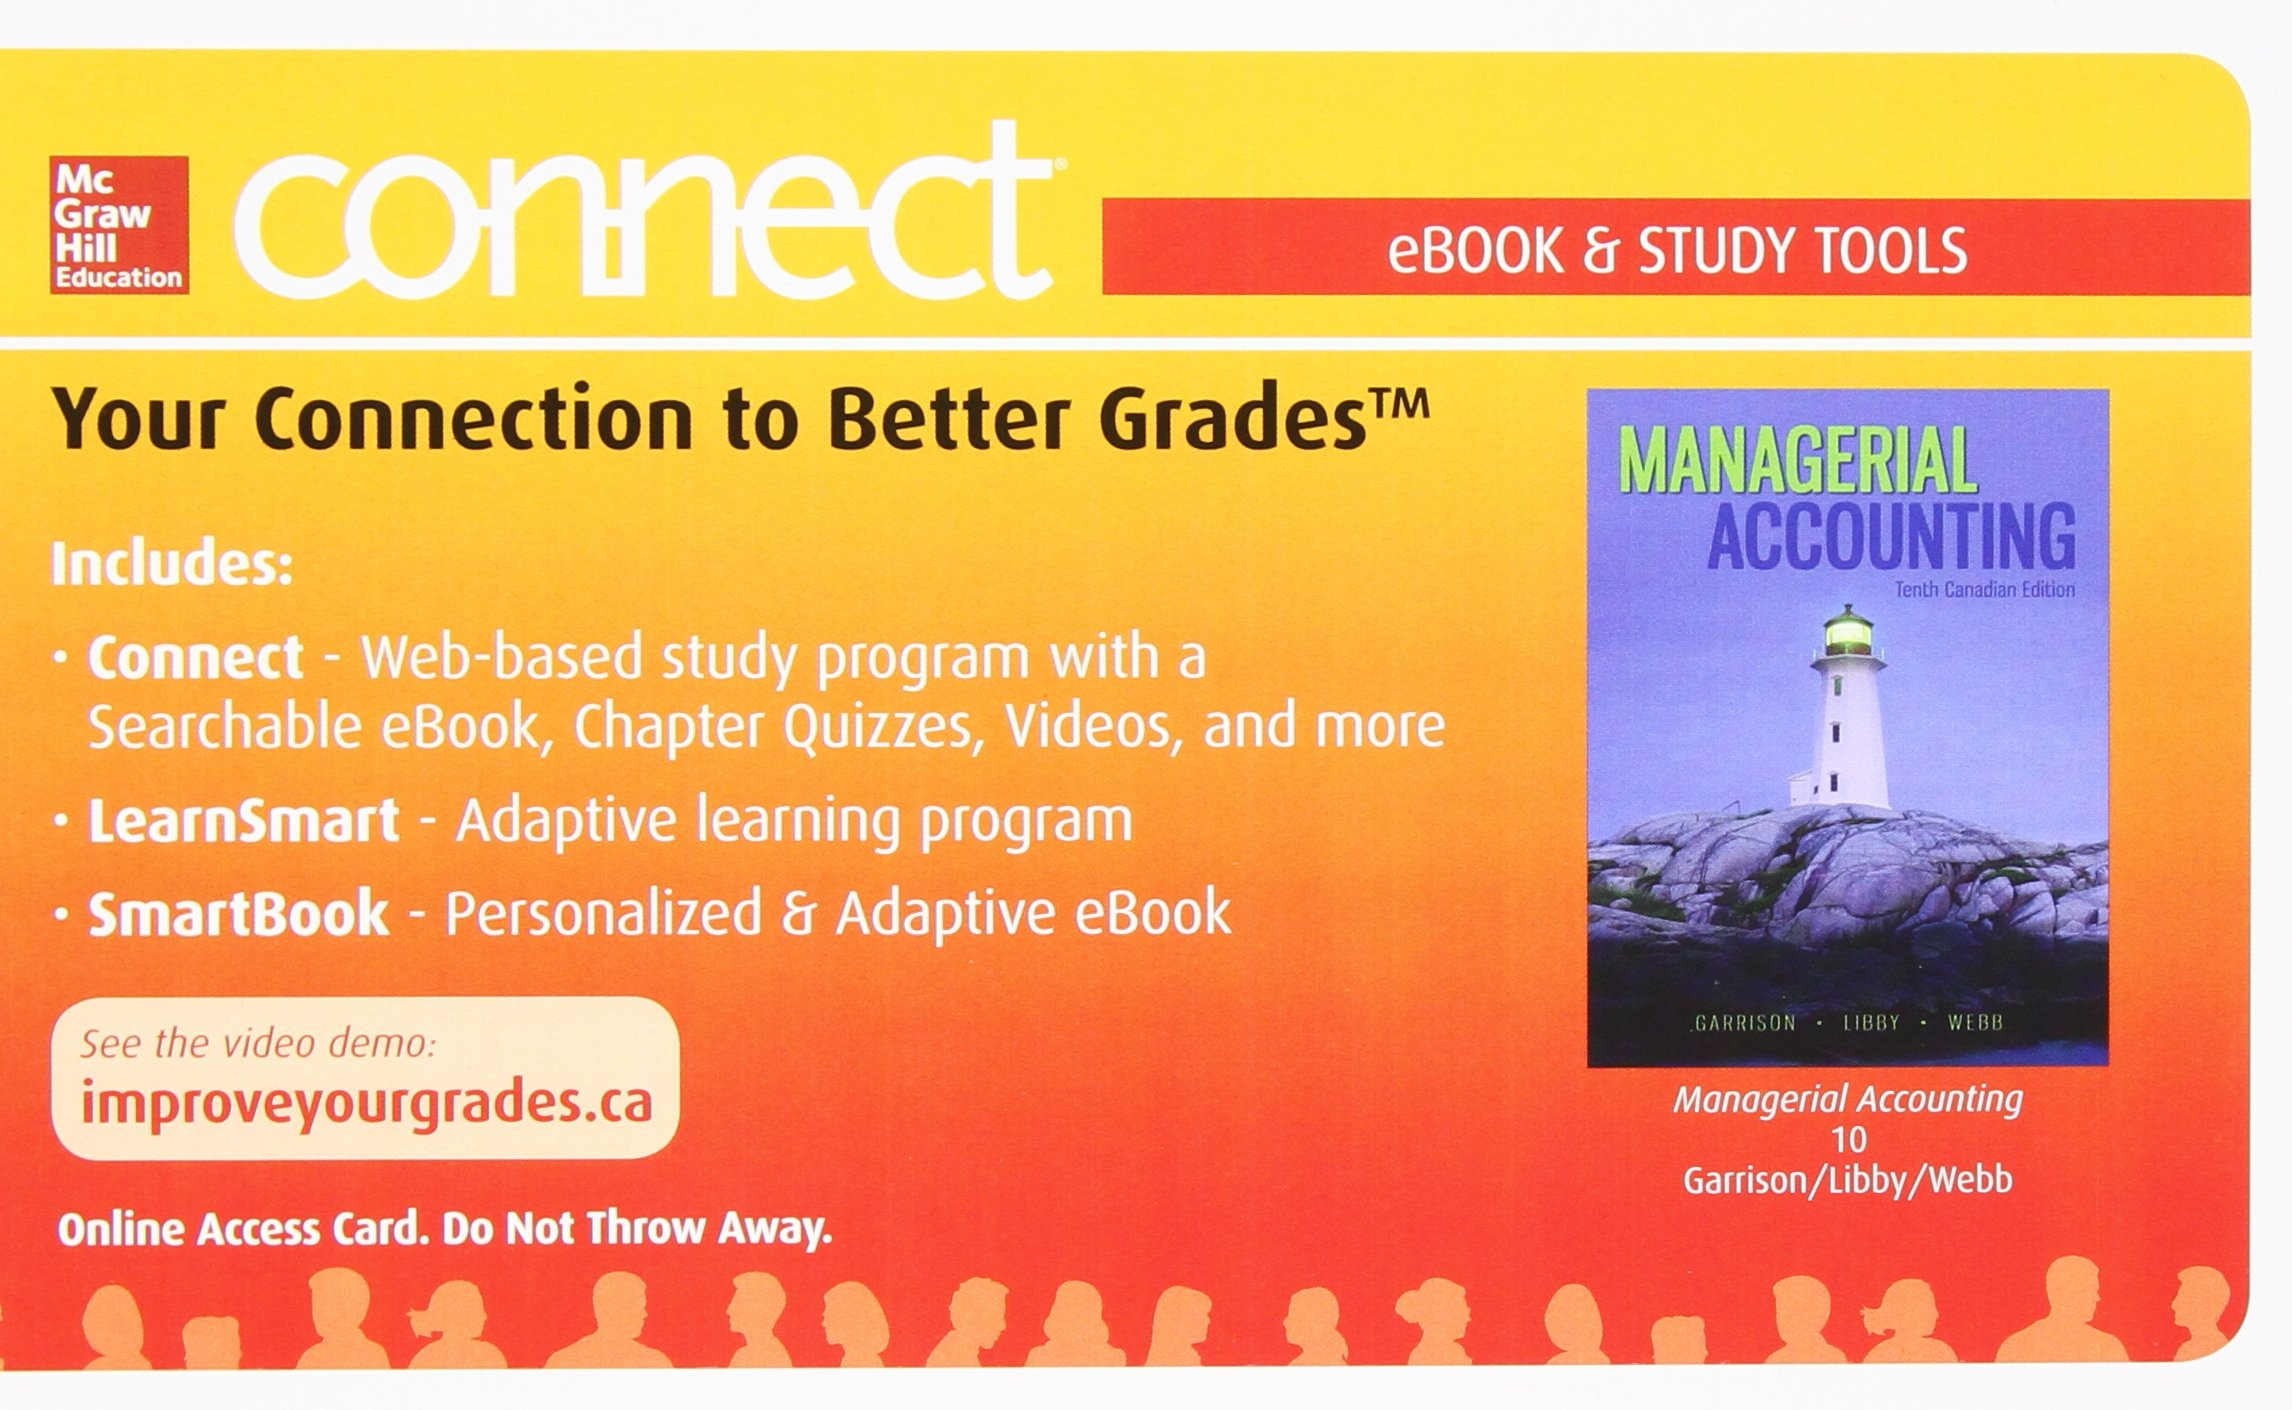 Managerial accounting with connect with smartbook ppk ray h managerial accounting with connect with smartbook ppk ray h garrison g richard chesley ray f carroll alan webb theresa libby 9781259103278 books fandeluxe Images